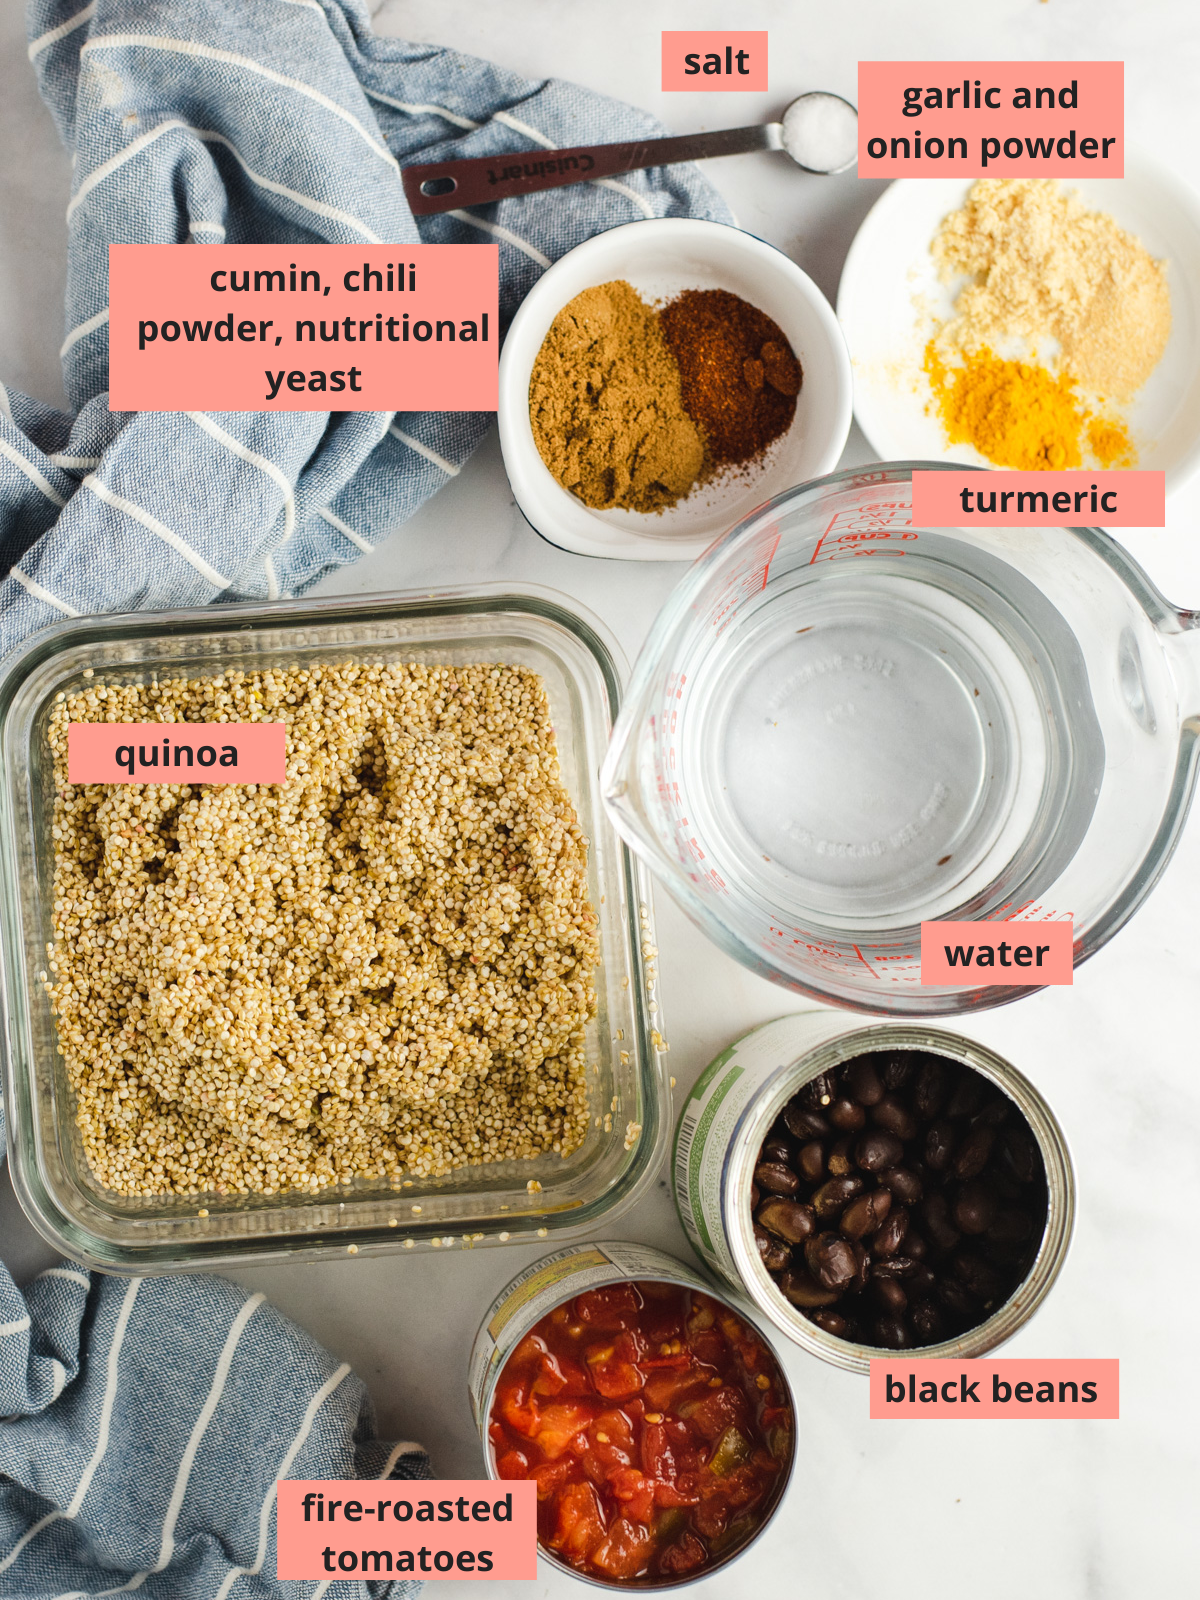 Labeled ingredients to make quinoa taco salad